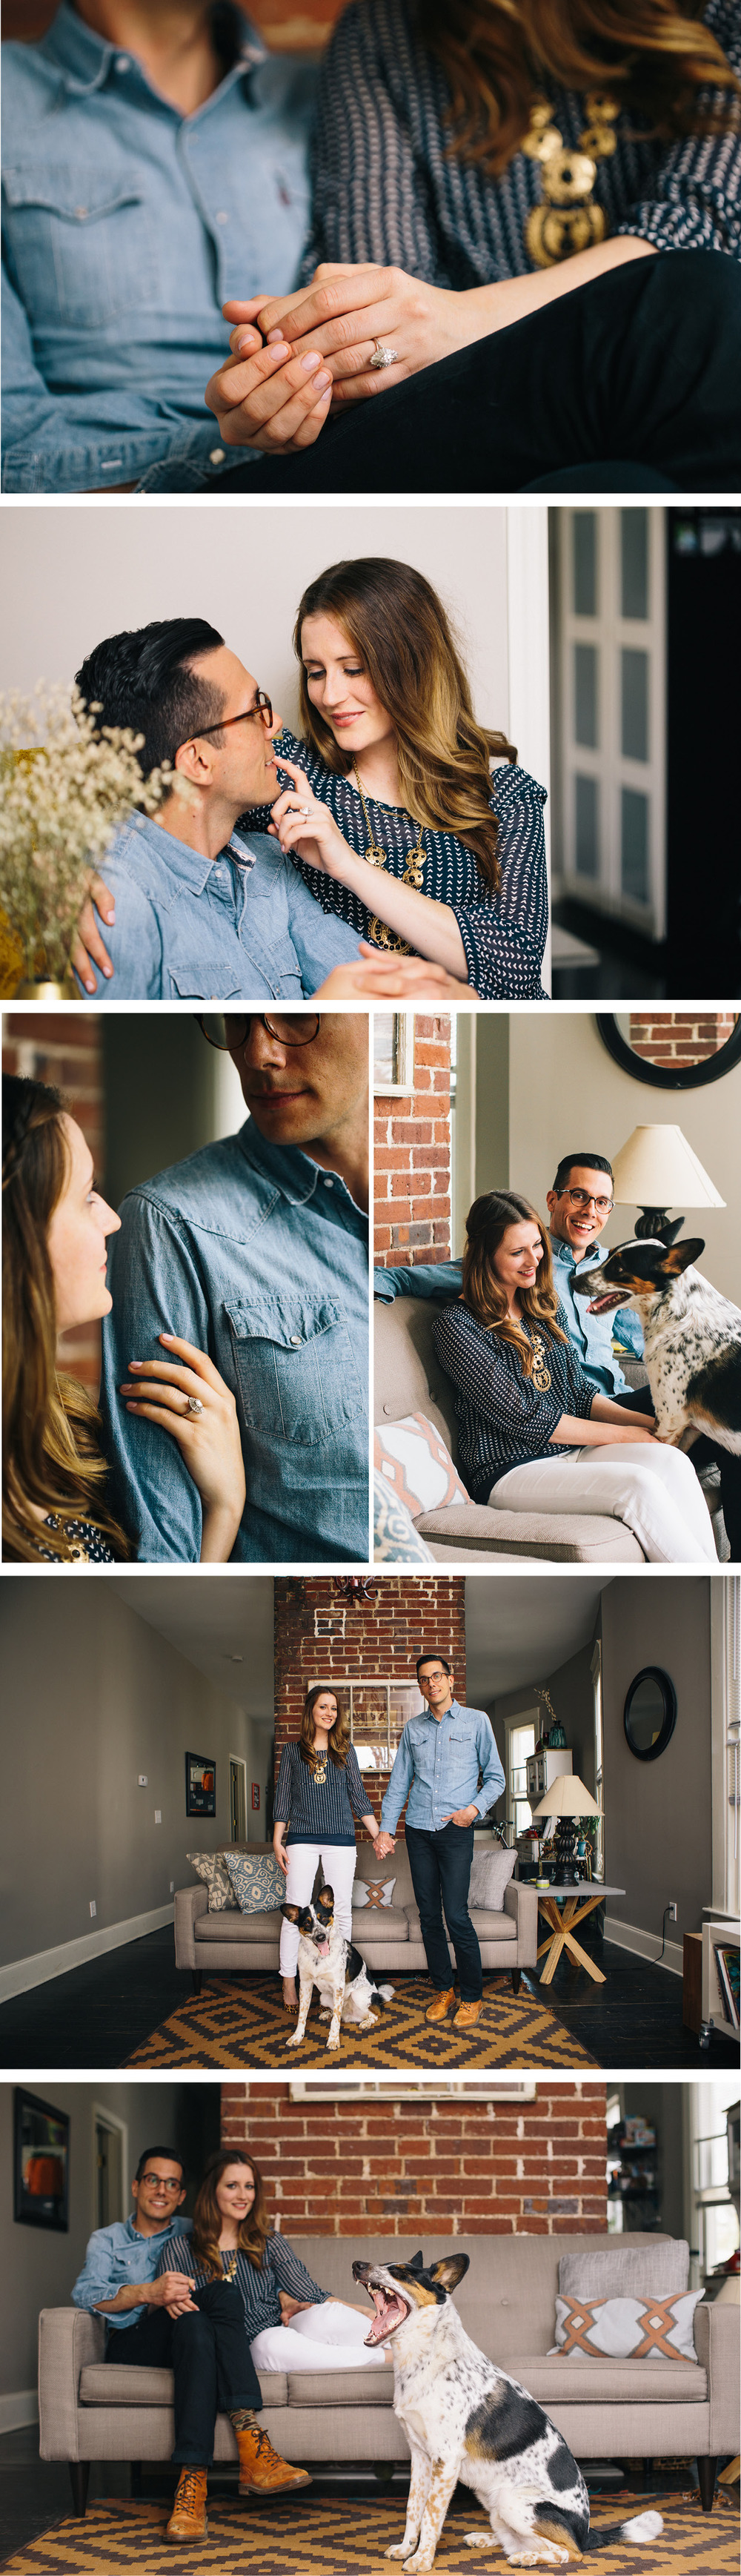 CK-Photo-Nashville-Wedding-engagement-Photographer-MB7.jpg